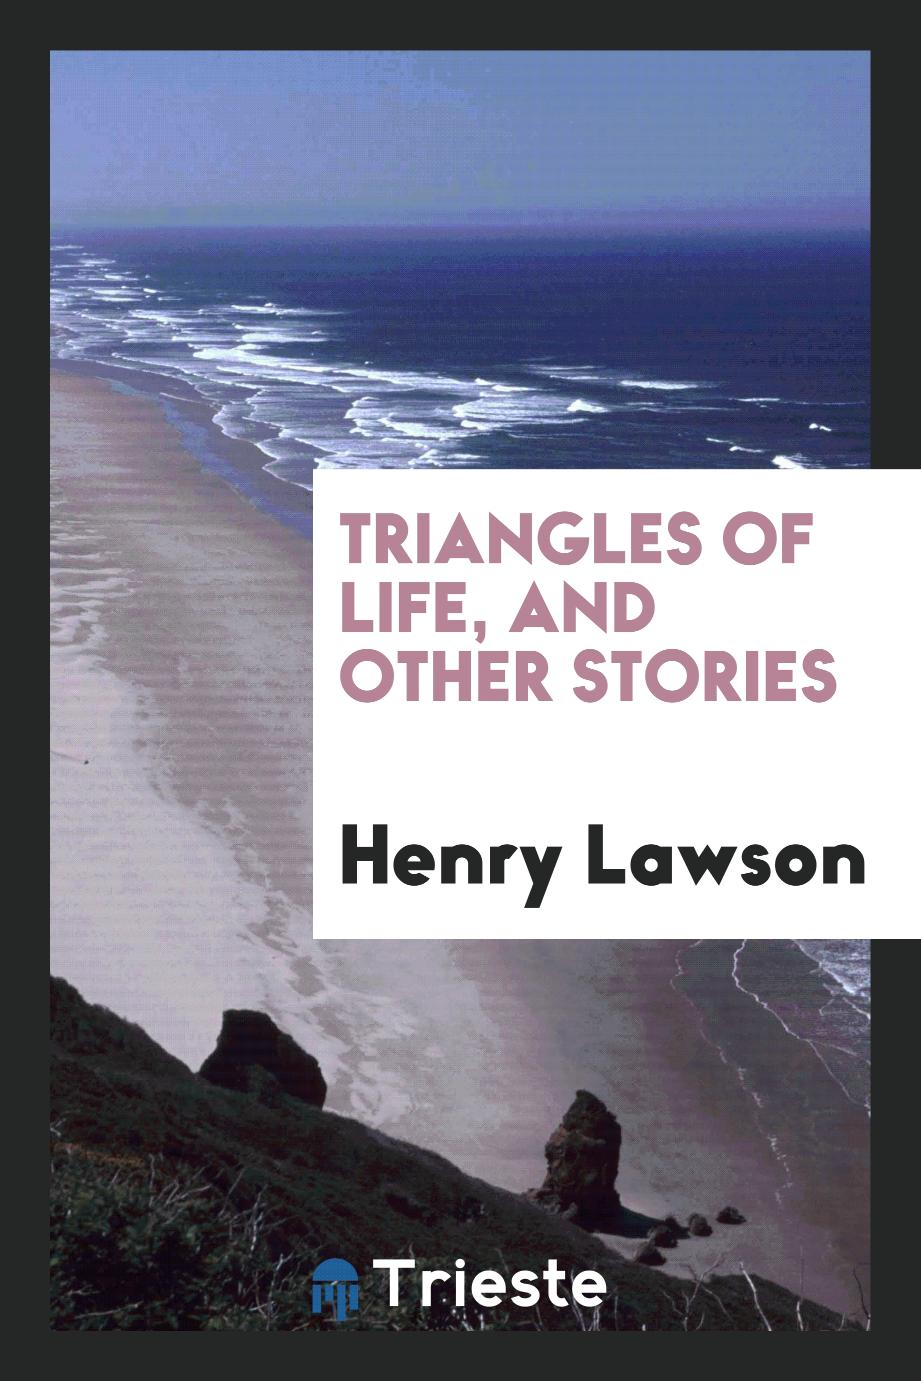 Triangles of life, and other stories